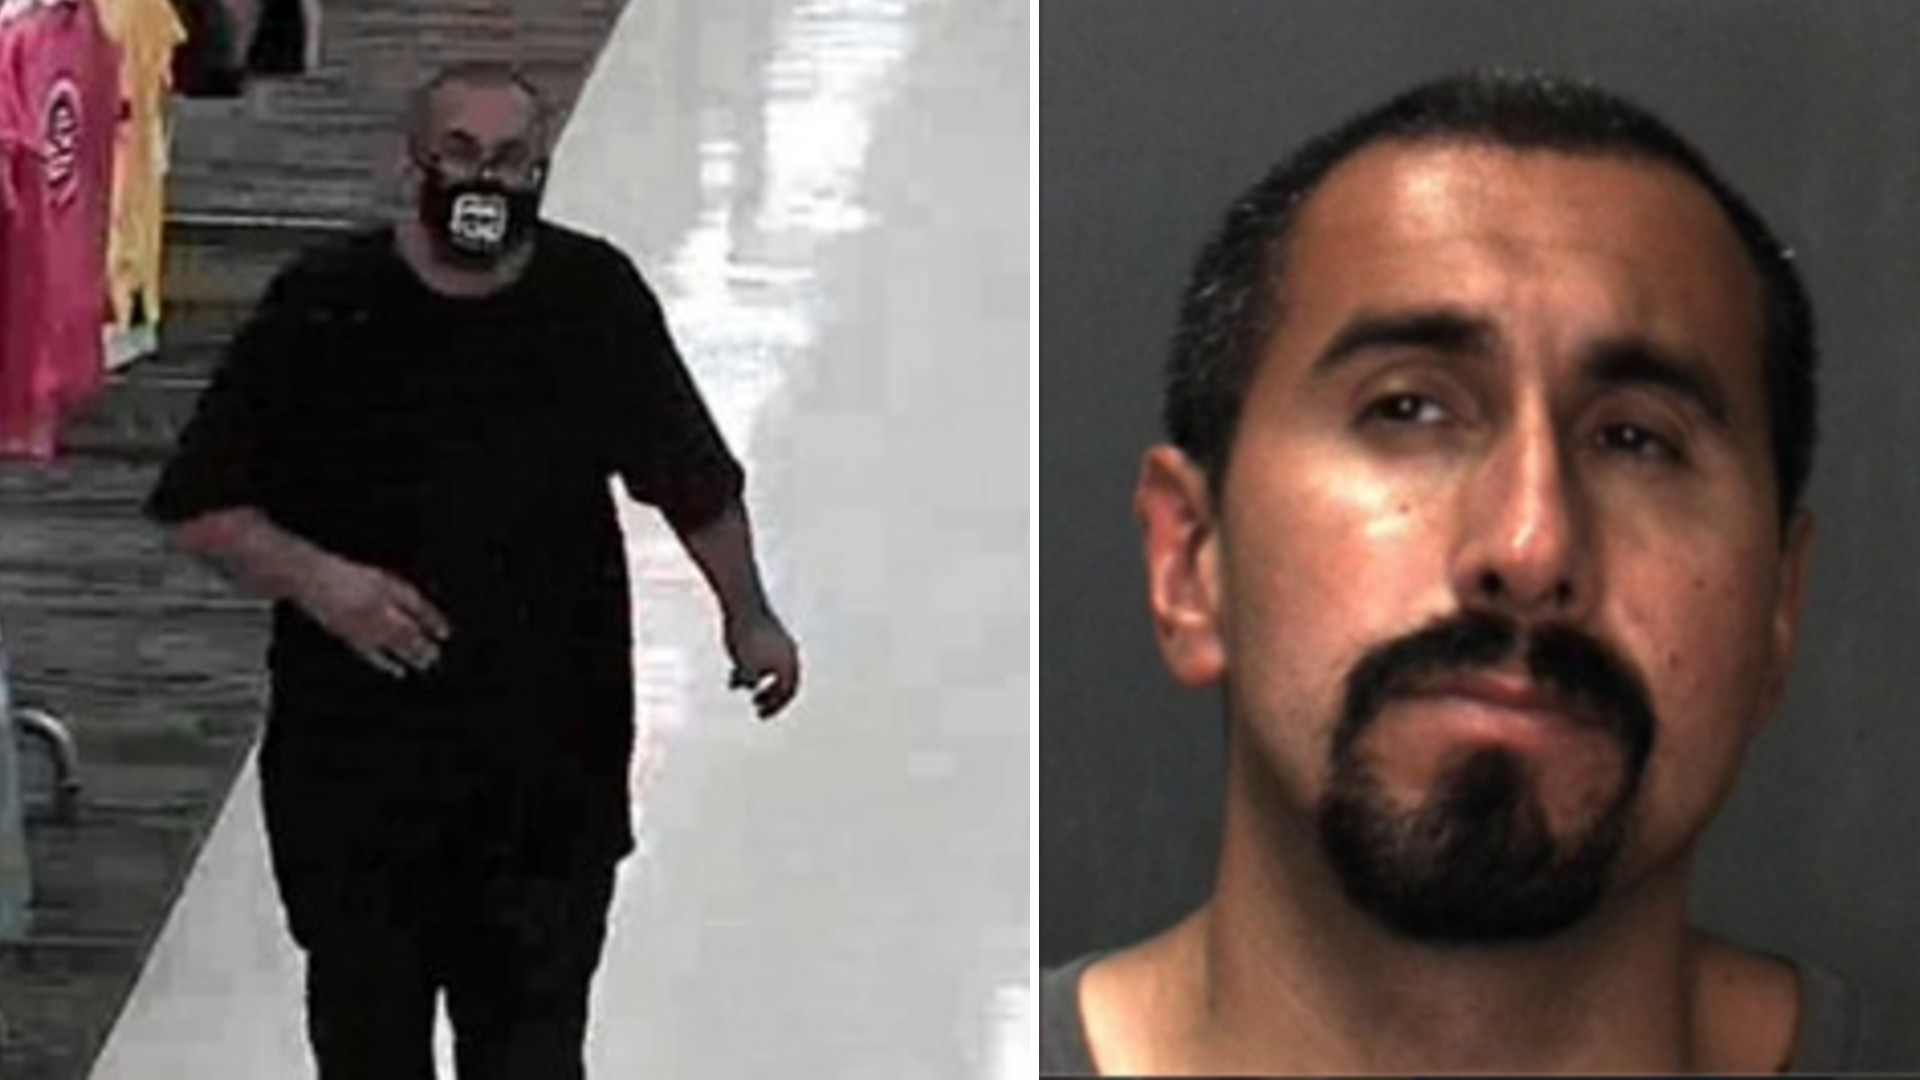 Moises Munoz, 42, of San Bernardino is seen in photos released by the Fontana Police Department on June 18, 2021.